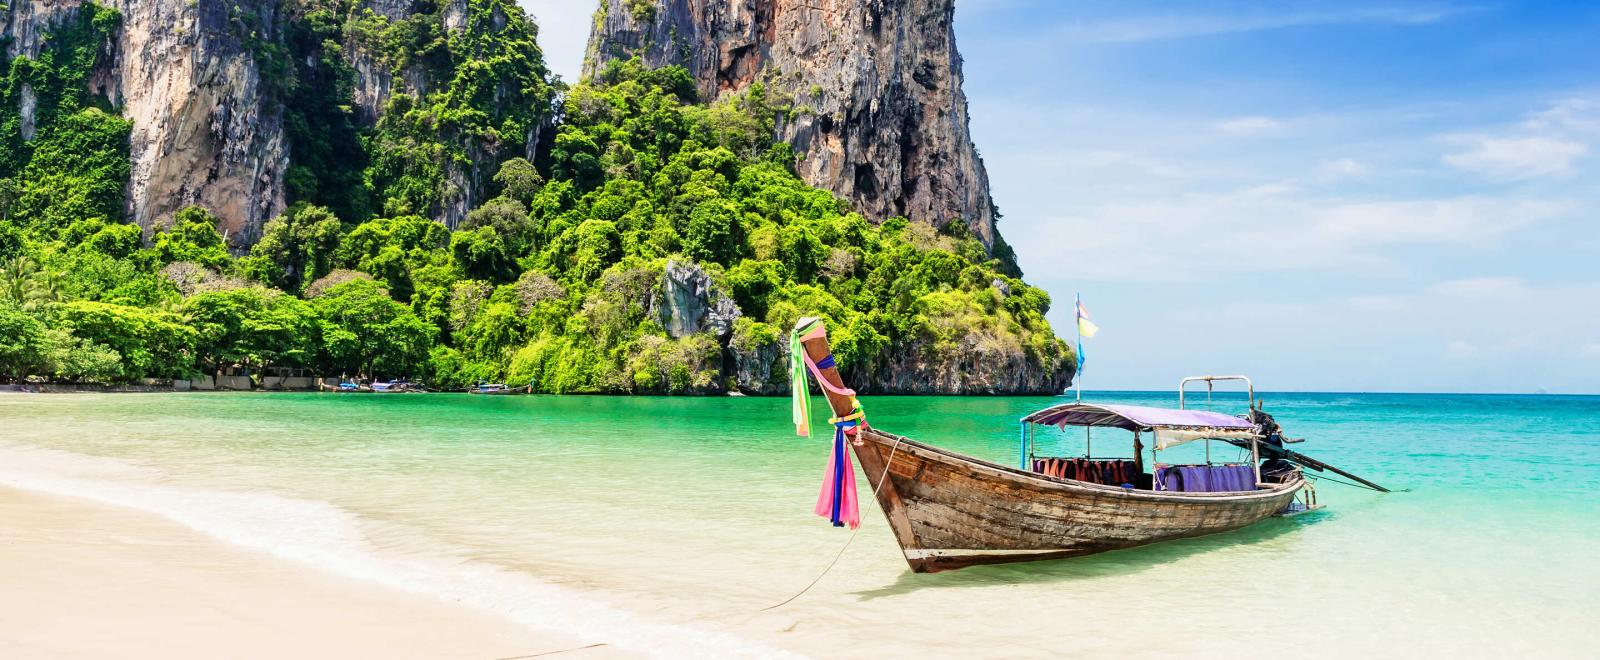 During the Projects Abroad Discovery Tour in Thailand you'll visit the most beautiful beaches by long tail boat.